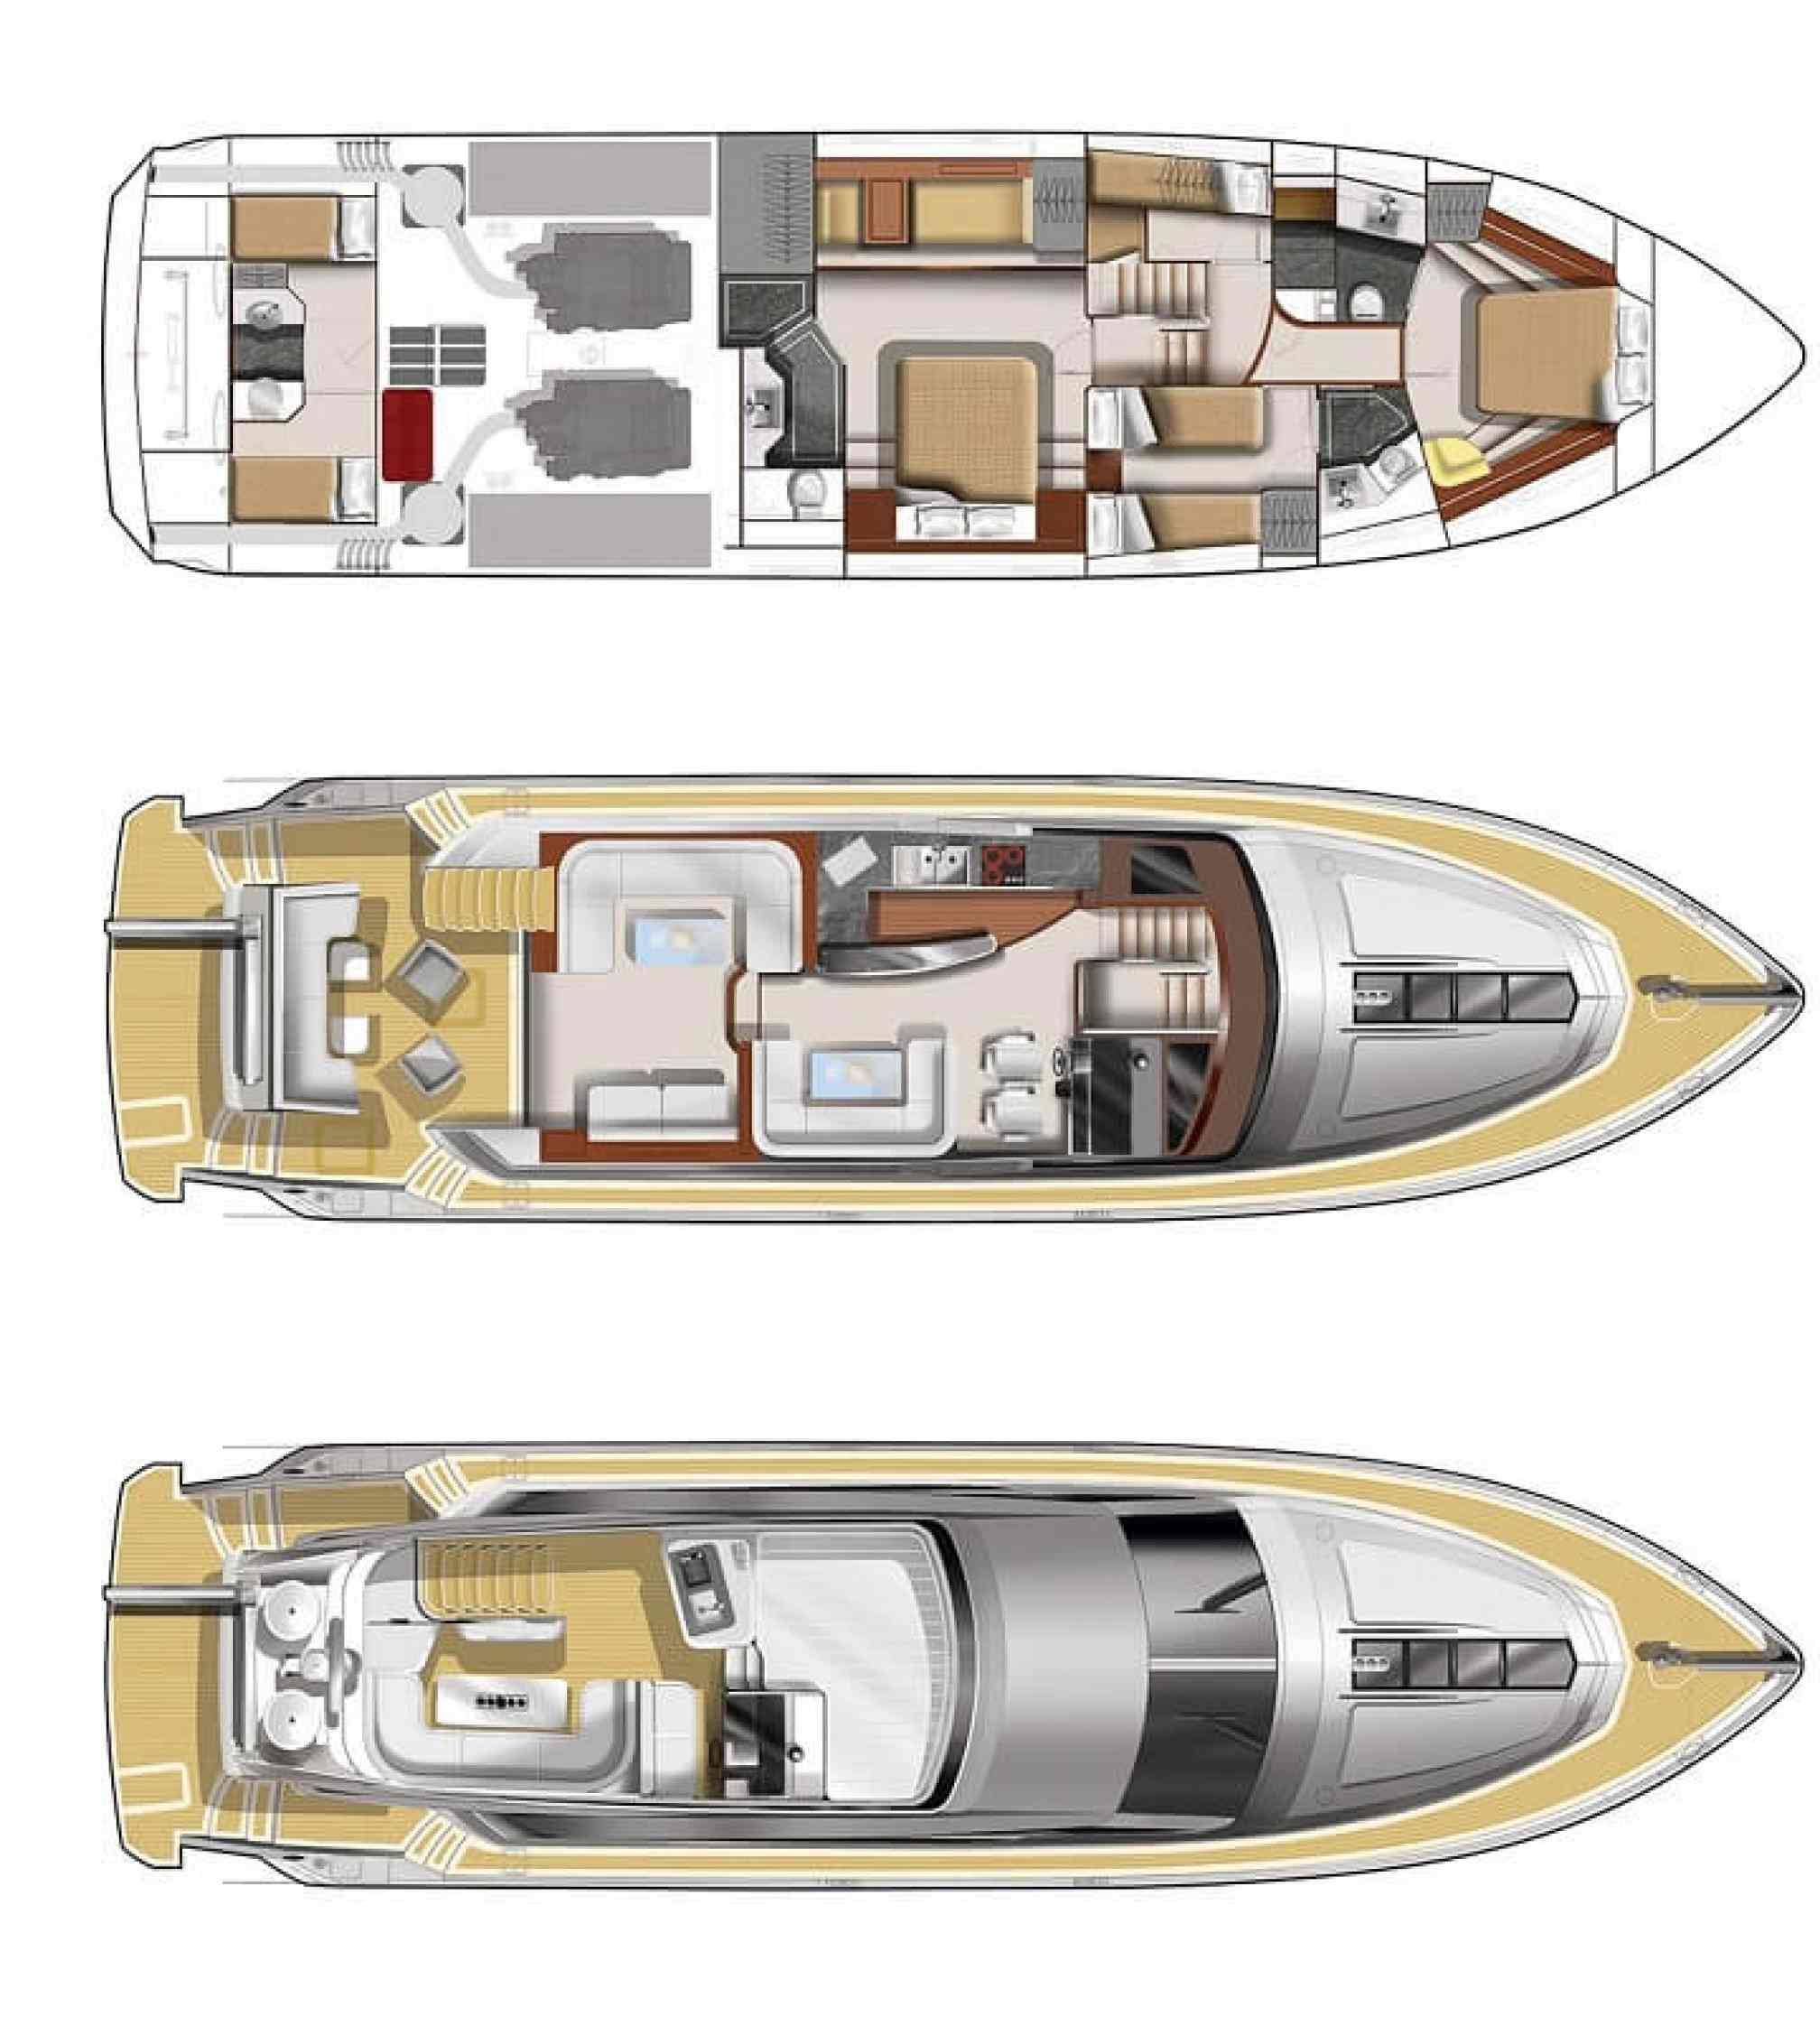 Galeon 640 Fly yacht charter layout